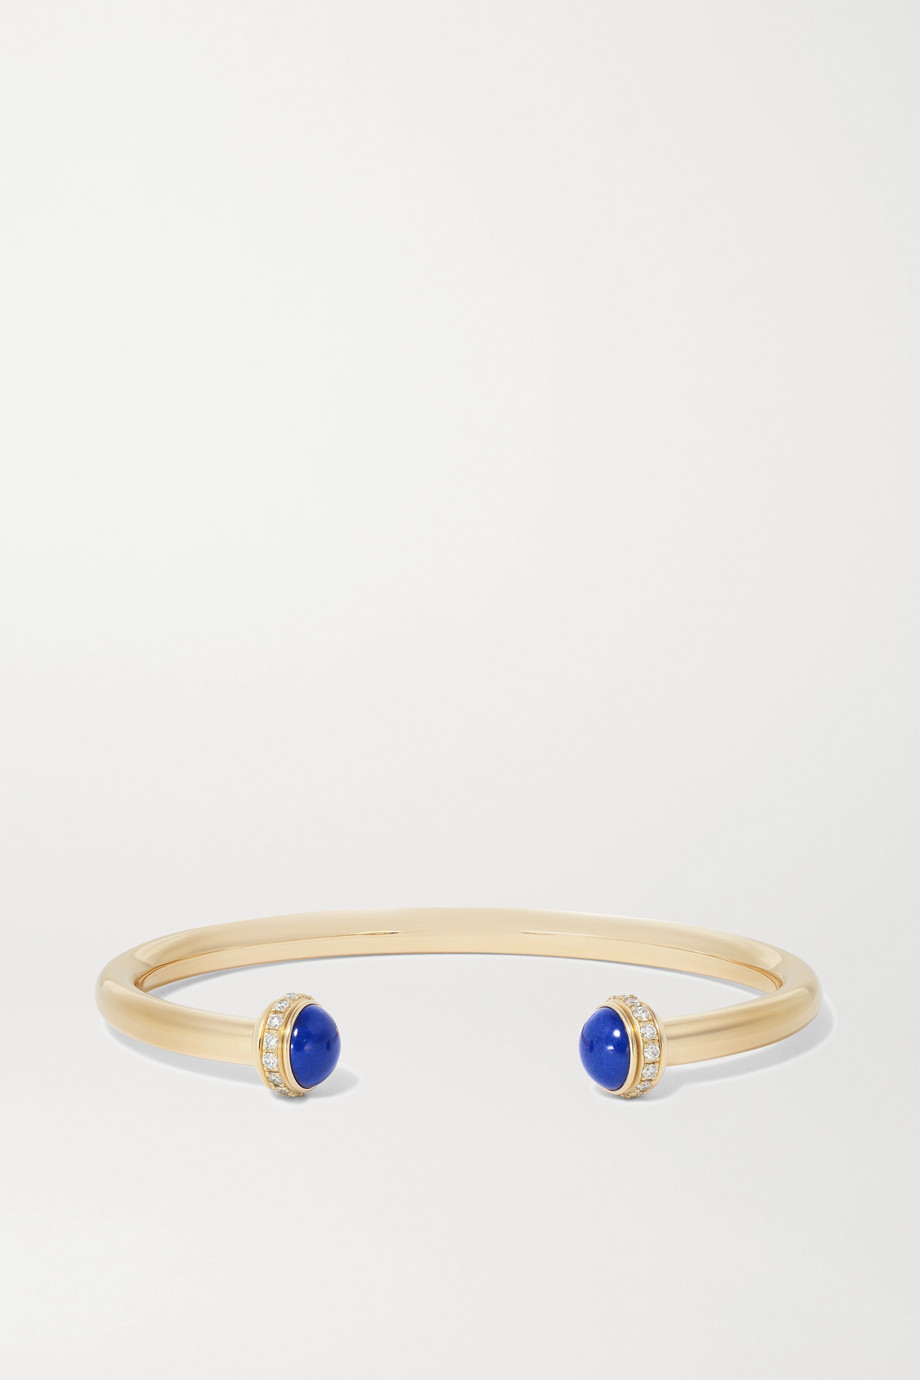 Piaget Possession 18-karat gold, lapis lazuli and diamond cuff